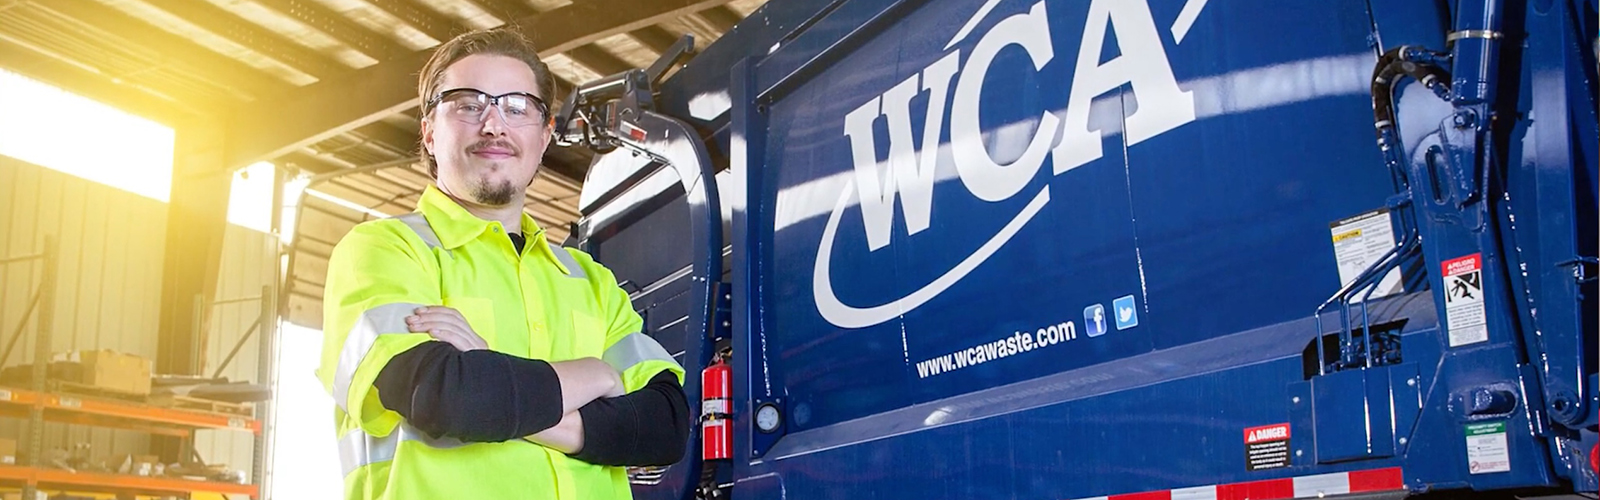 WCA Waste Corporation, Man standing in front of WCA truck, Opensesame